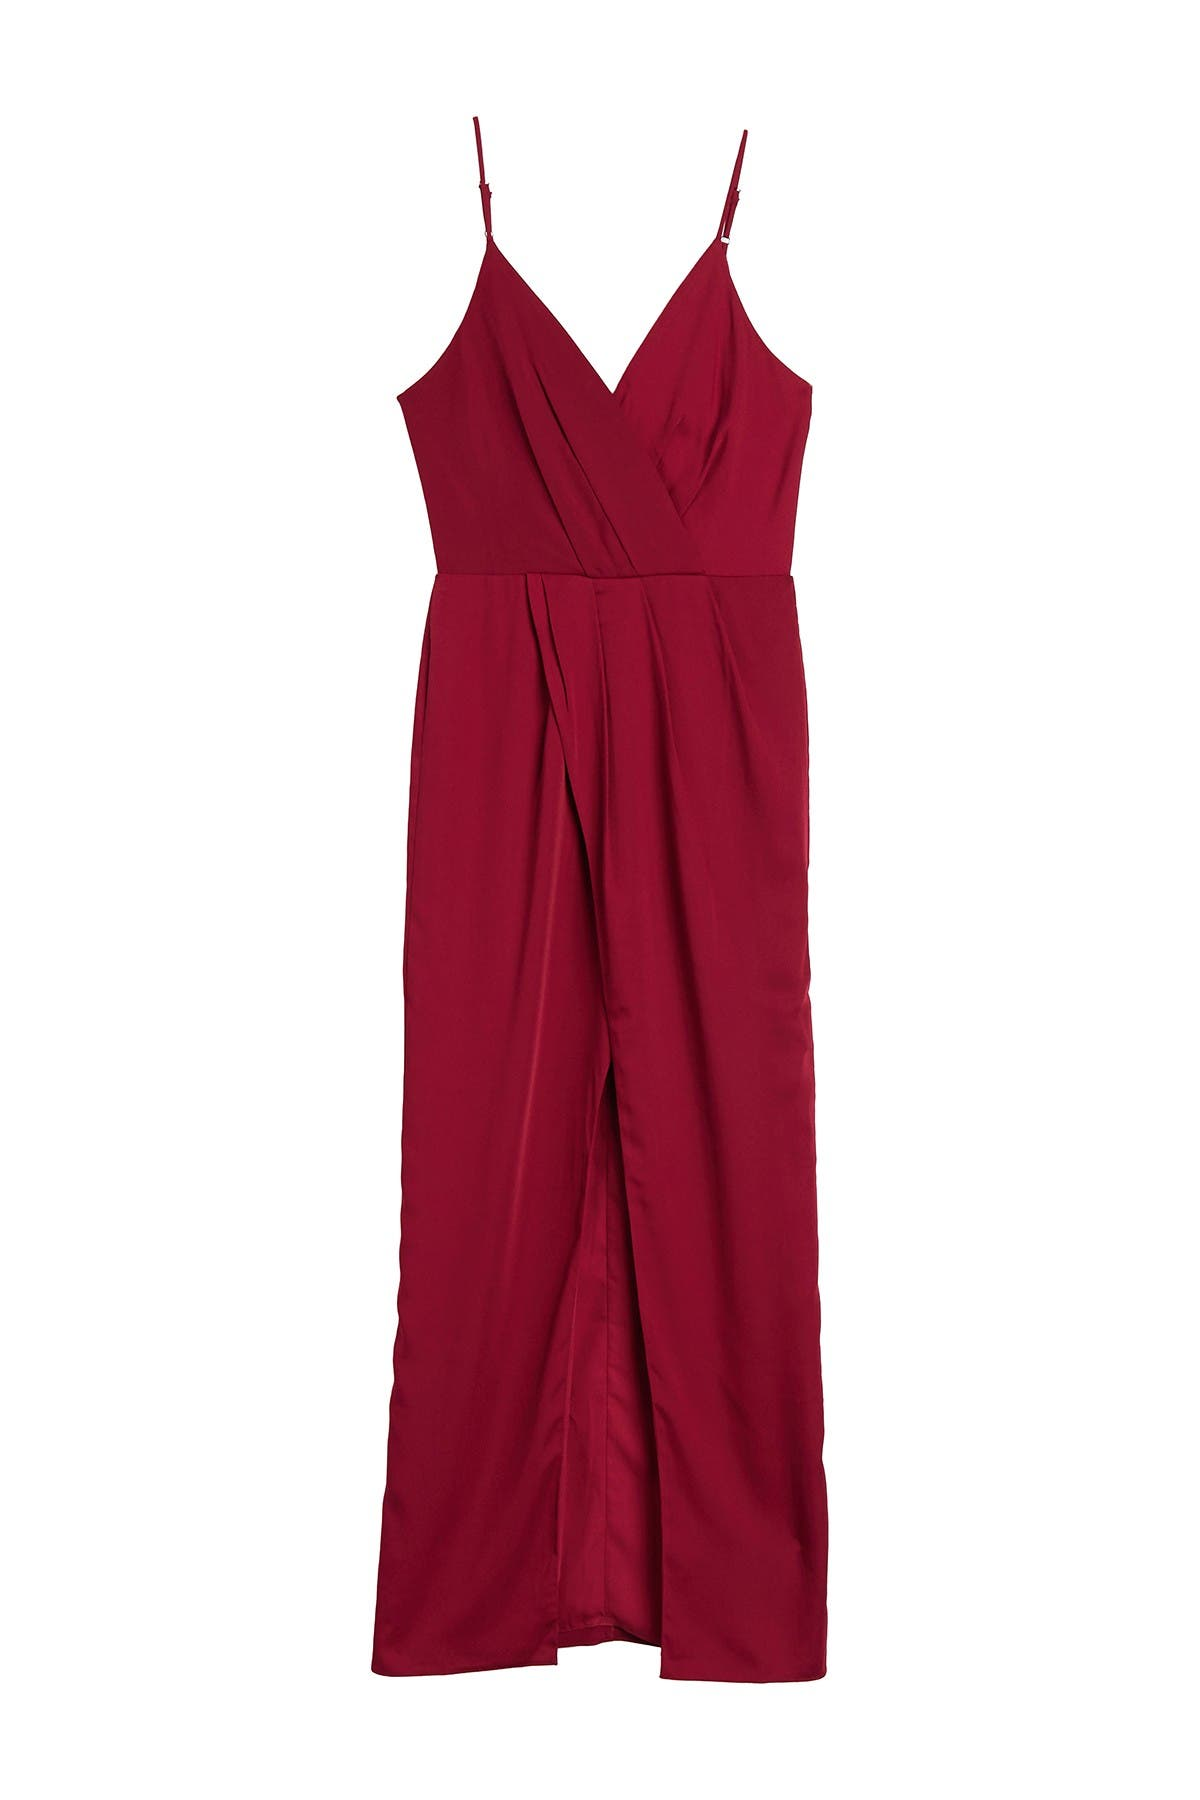 Image of Harlyn Surplice Neck Sleeveless Front Slit Gown